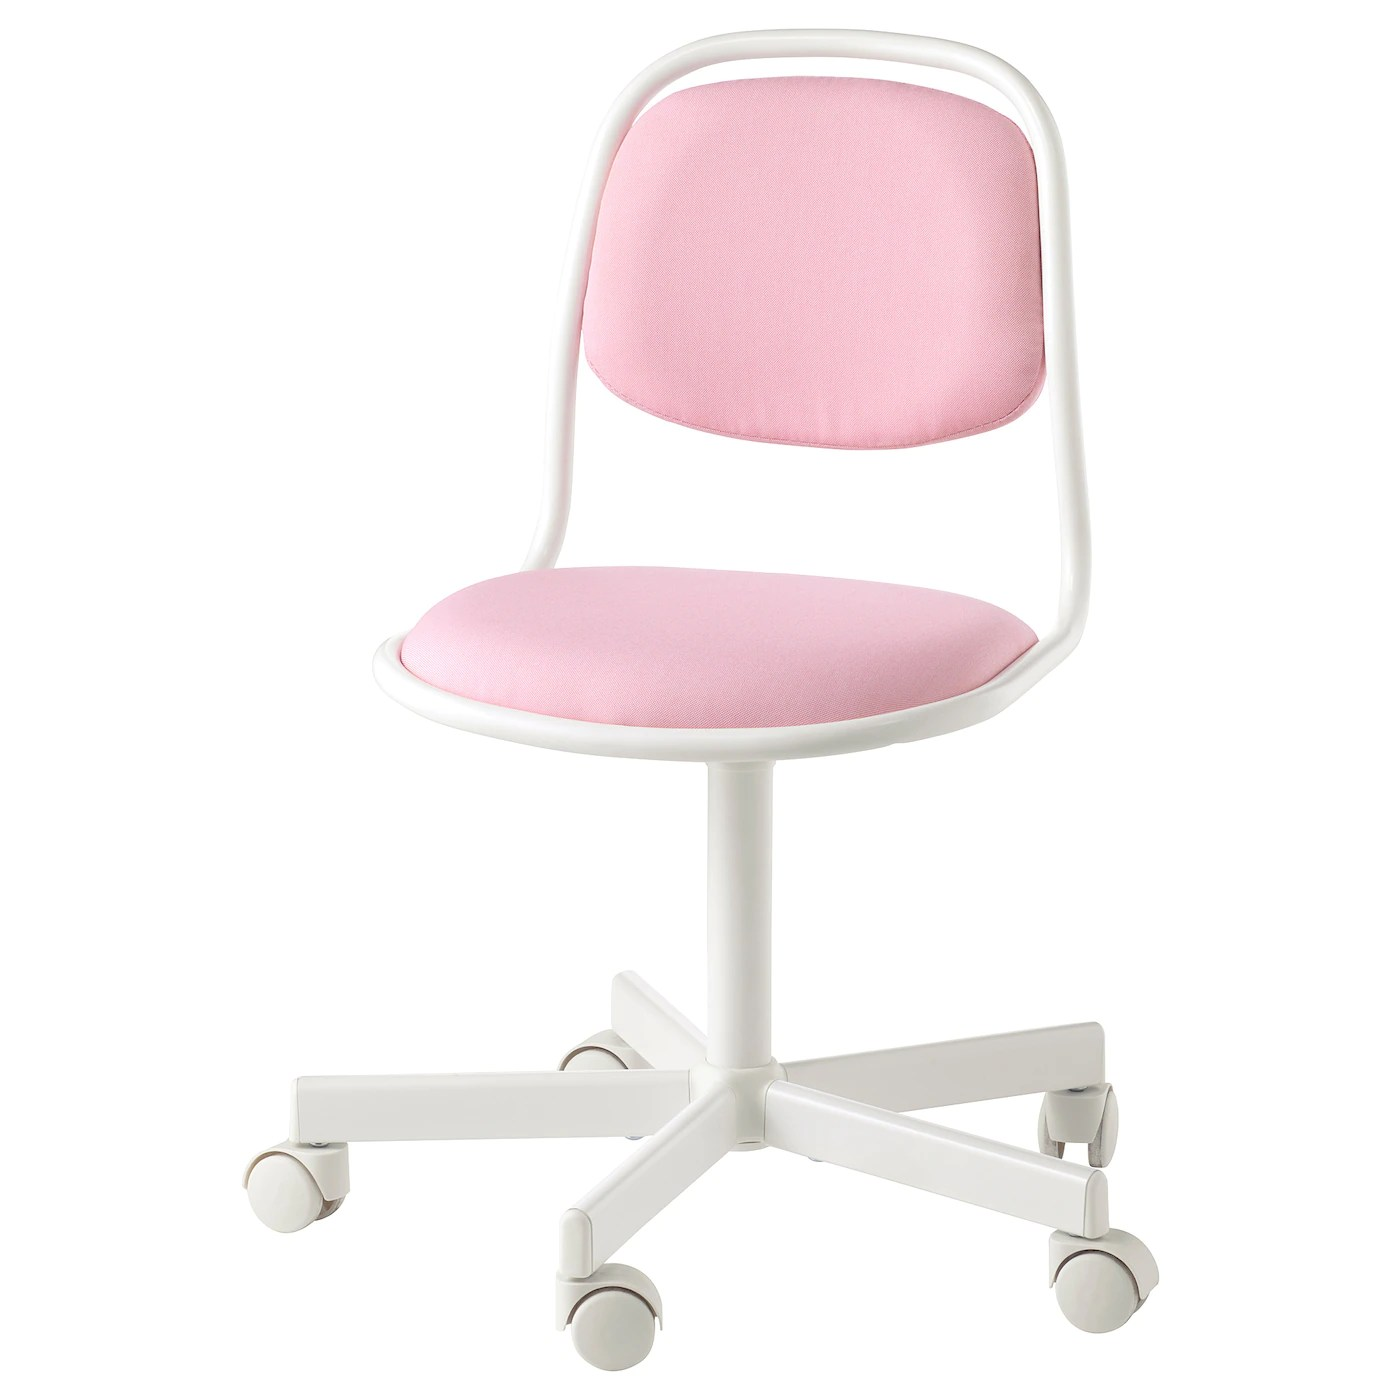 Fille Chaise De Bureau Rose Ikea Novocom Top